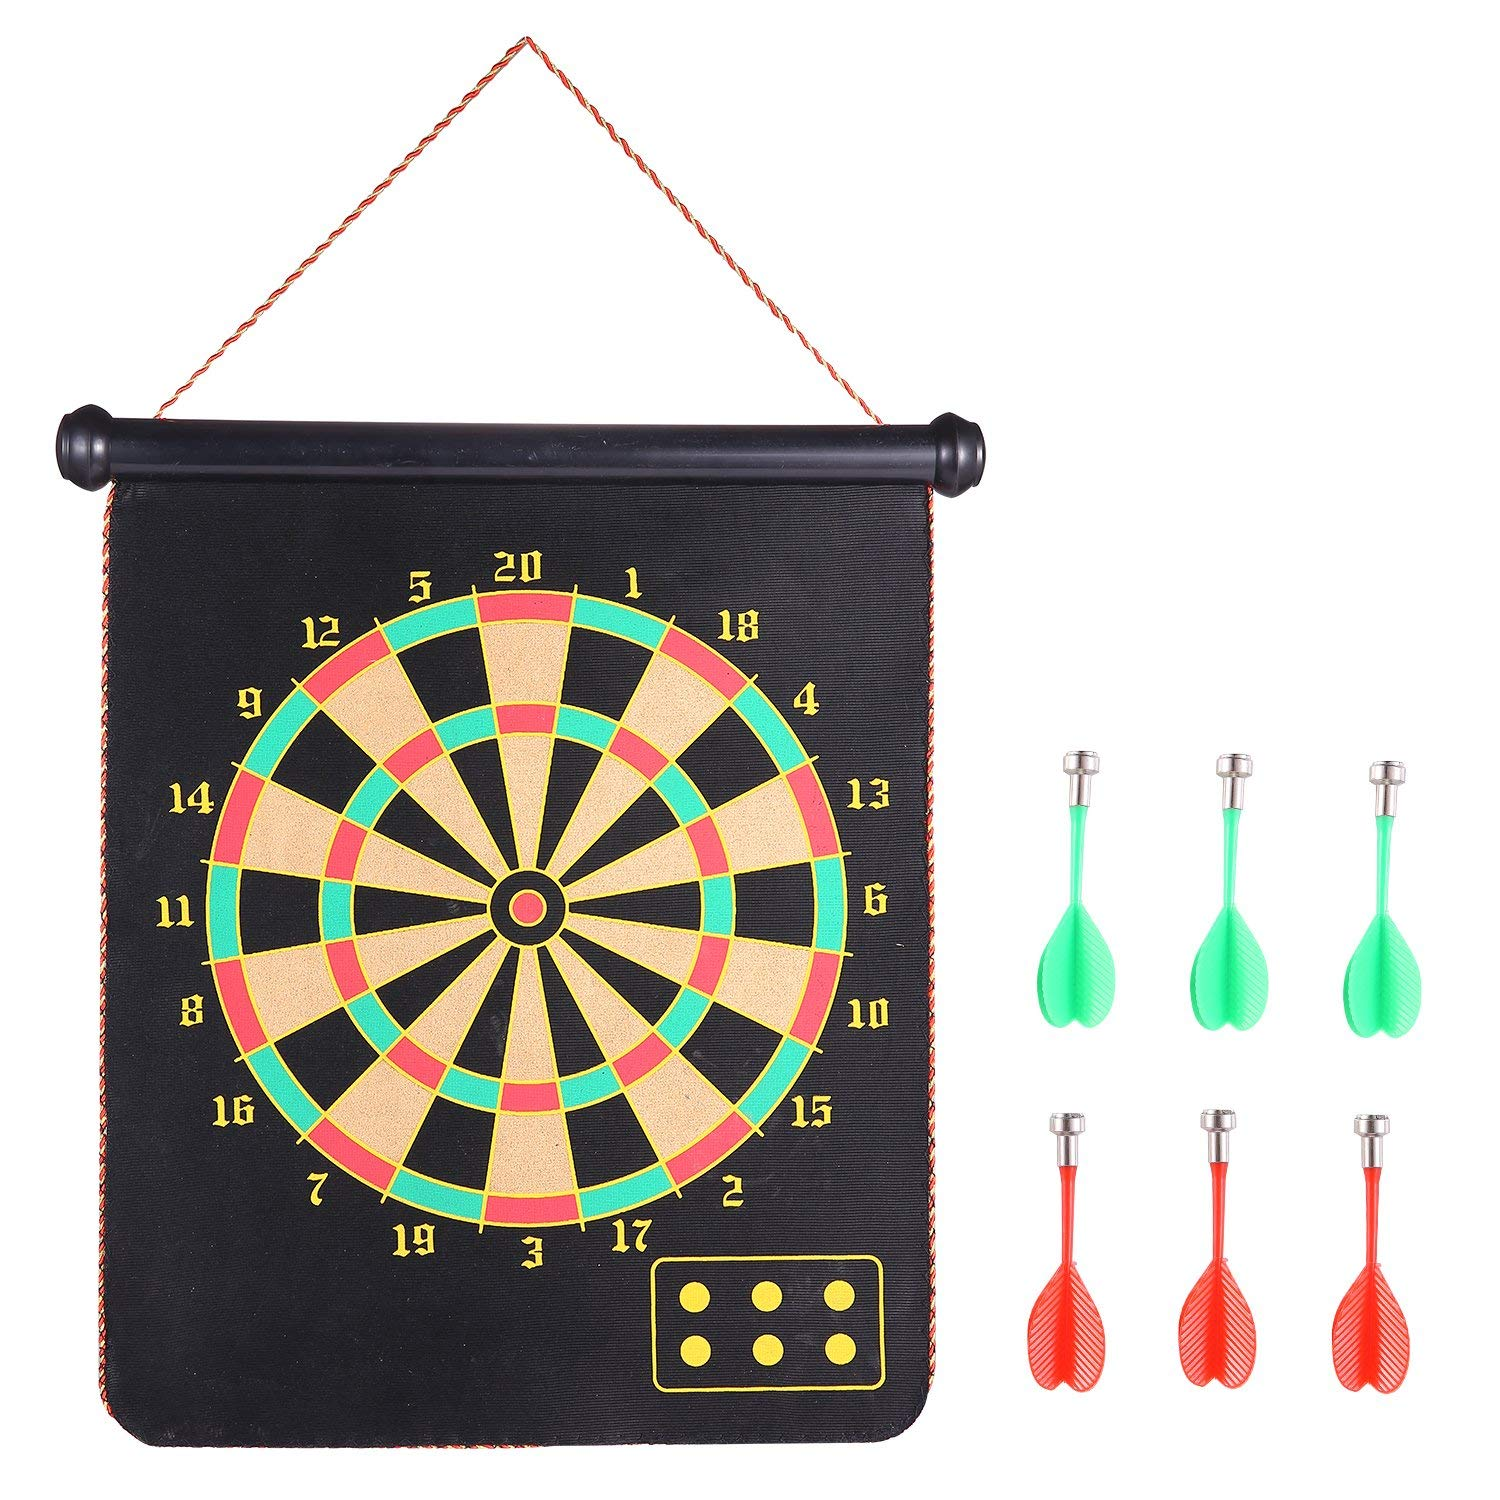 RaboSky Magnetic Dart Board Set